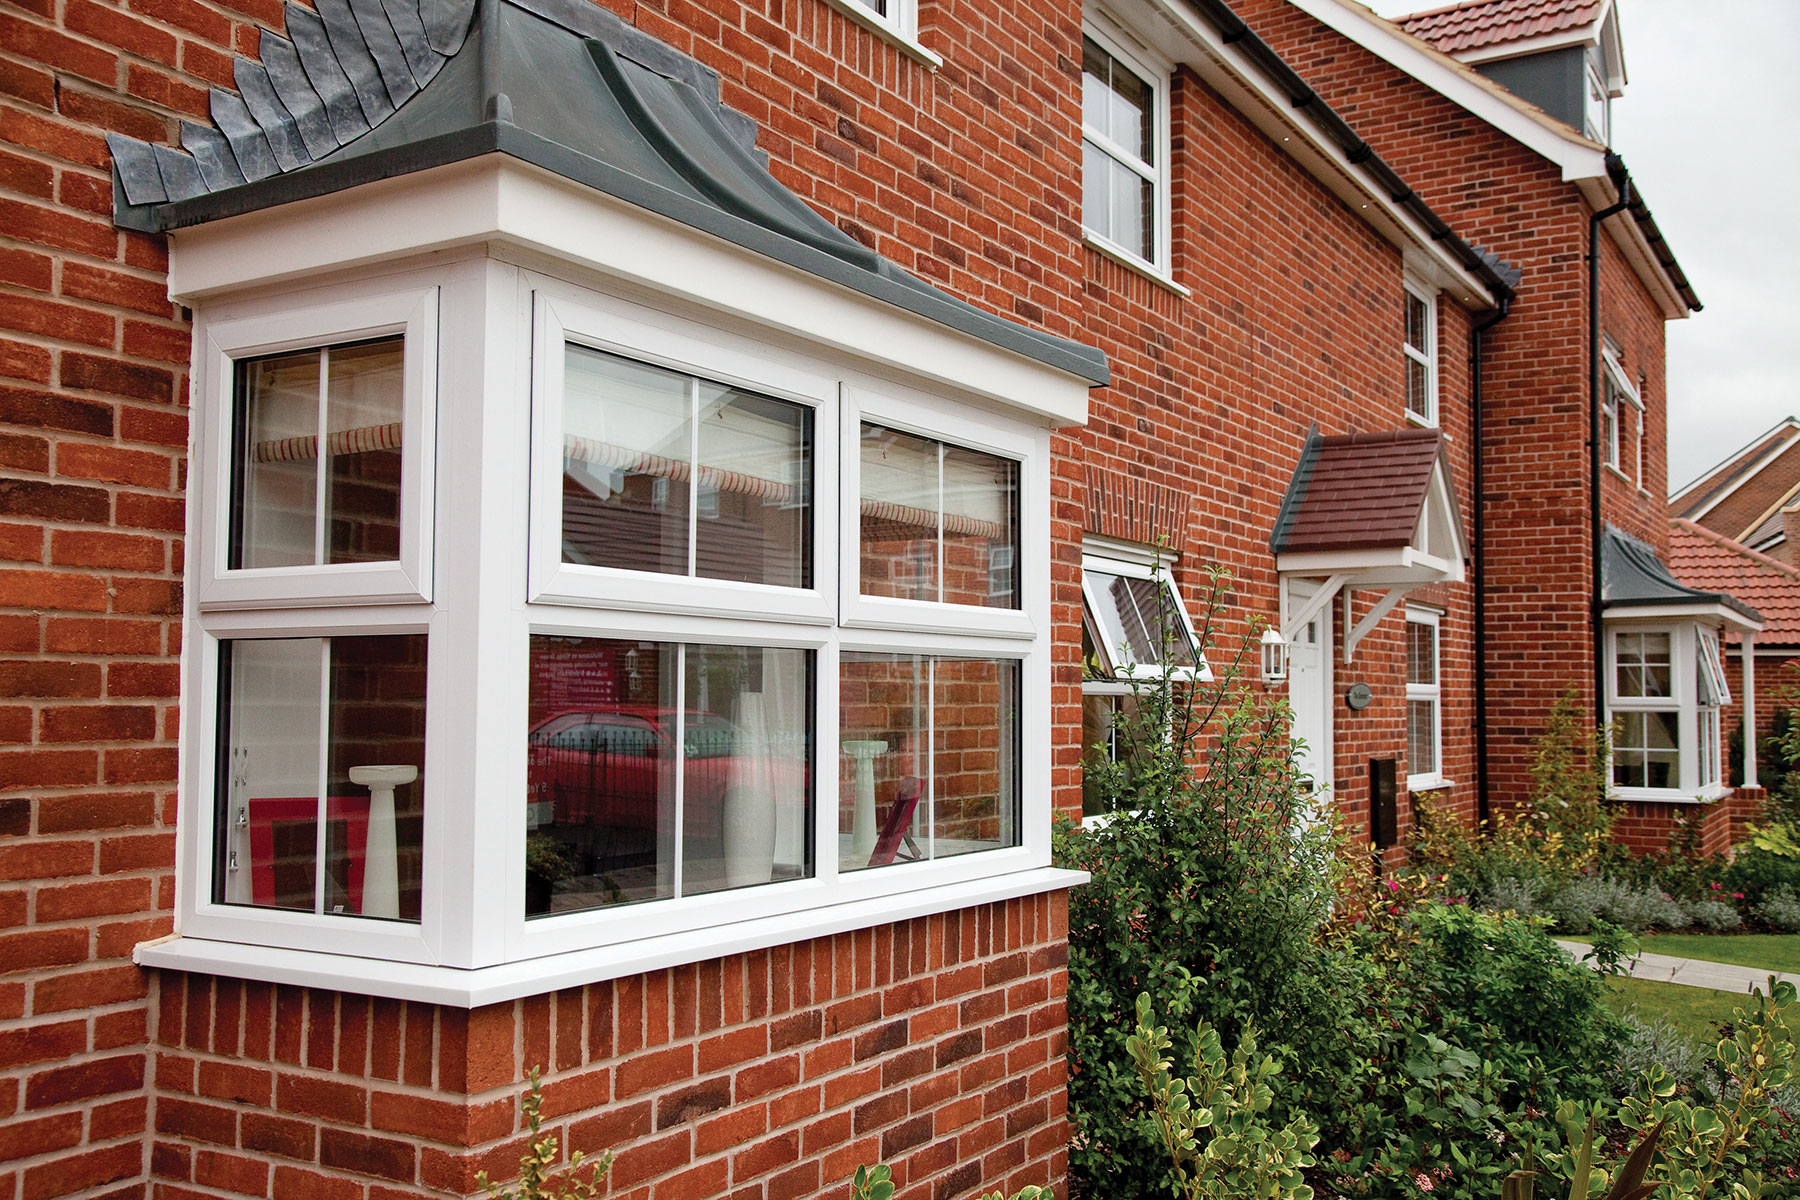 Double Glazed Windows : Upvc windows in kent double glazed maidstone